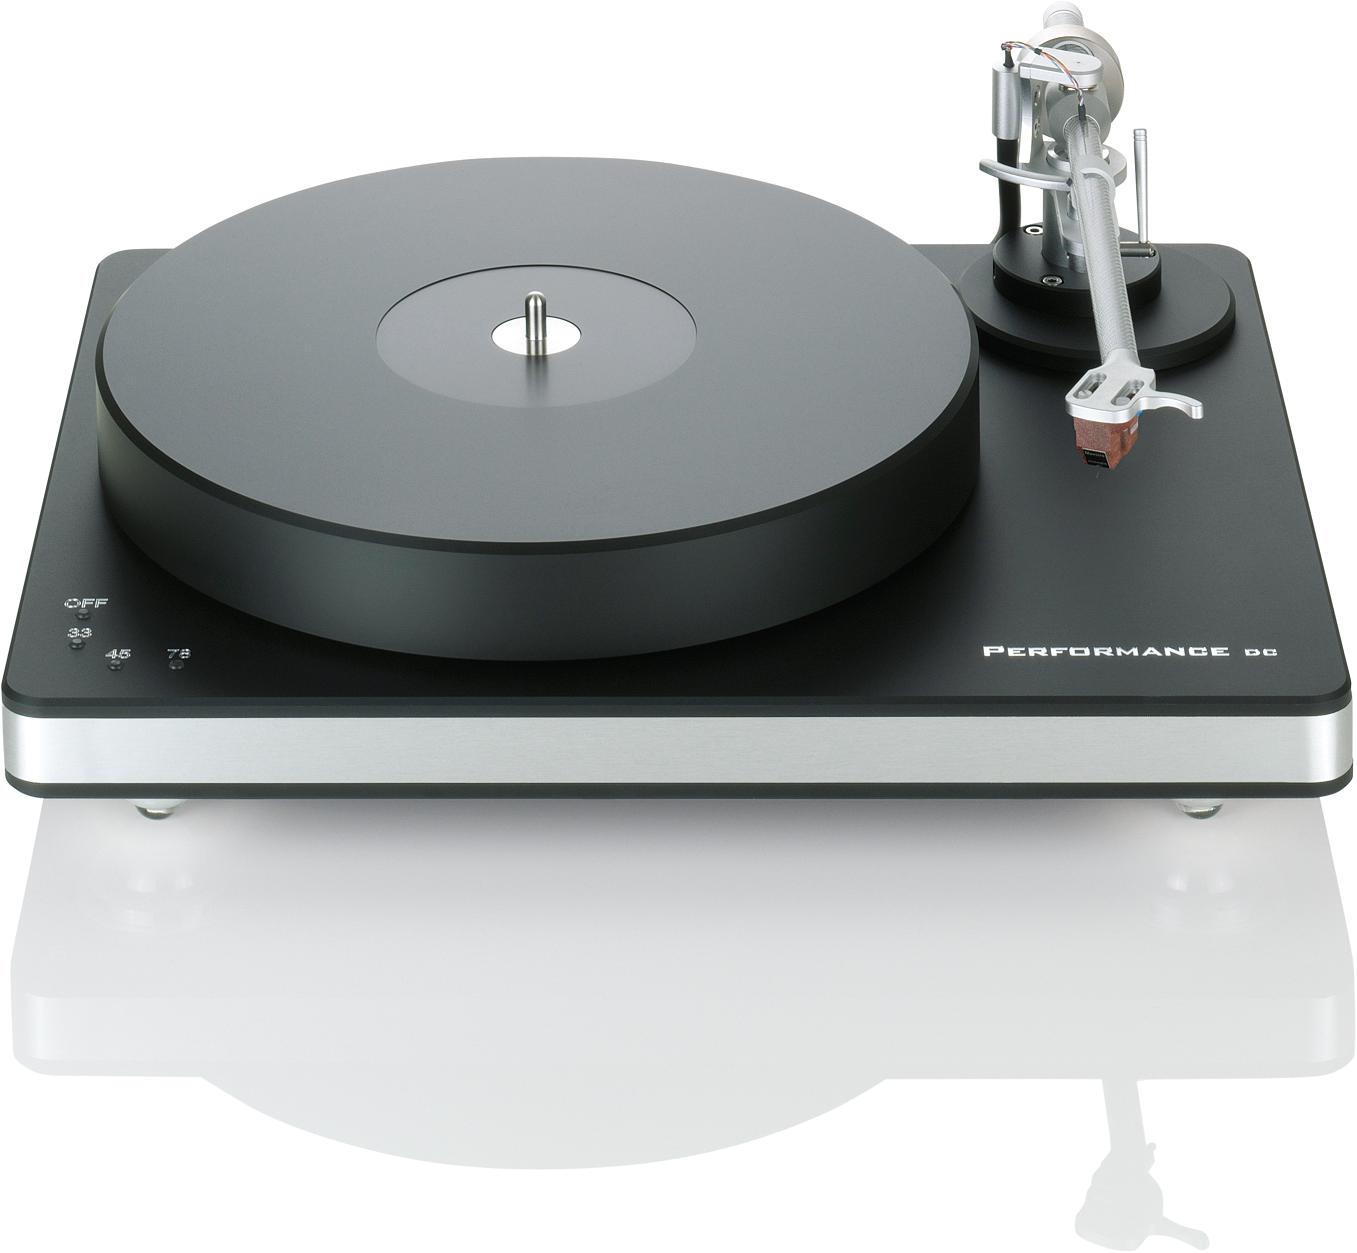 http://www.audioaffair.co.uk/images/uploads/clearaudio-performance-dc-turntable-black-and-silver.jpg